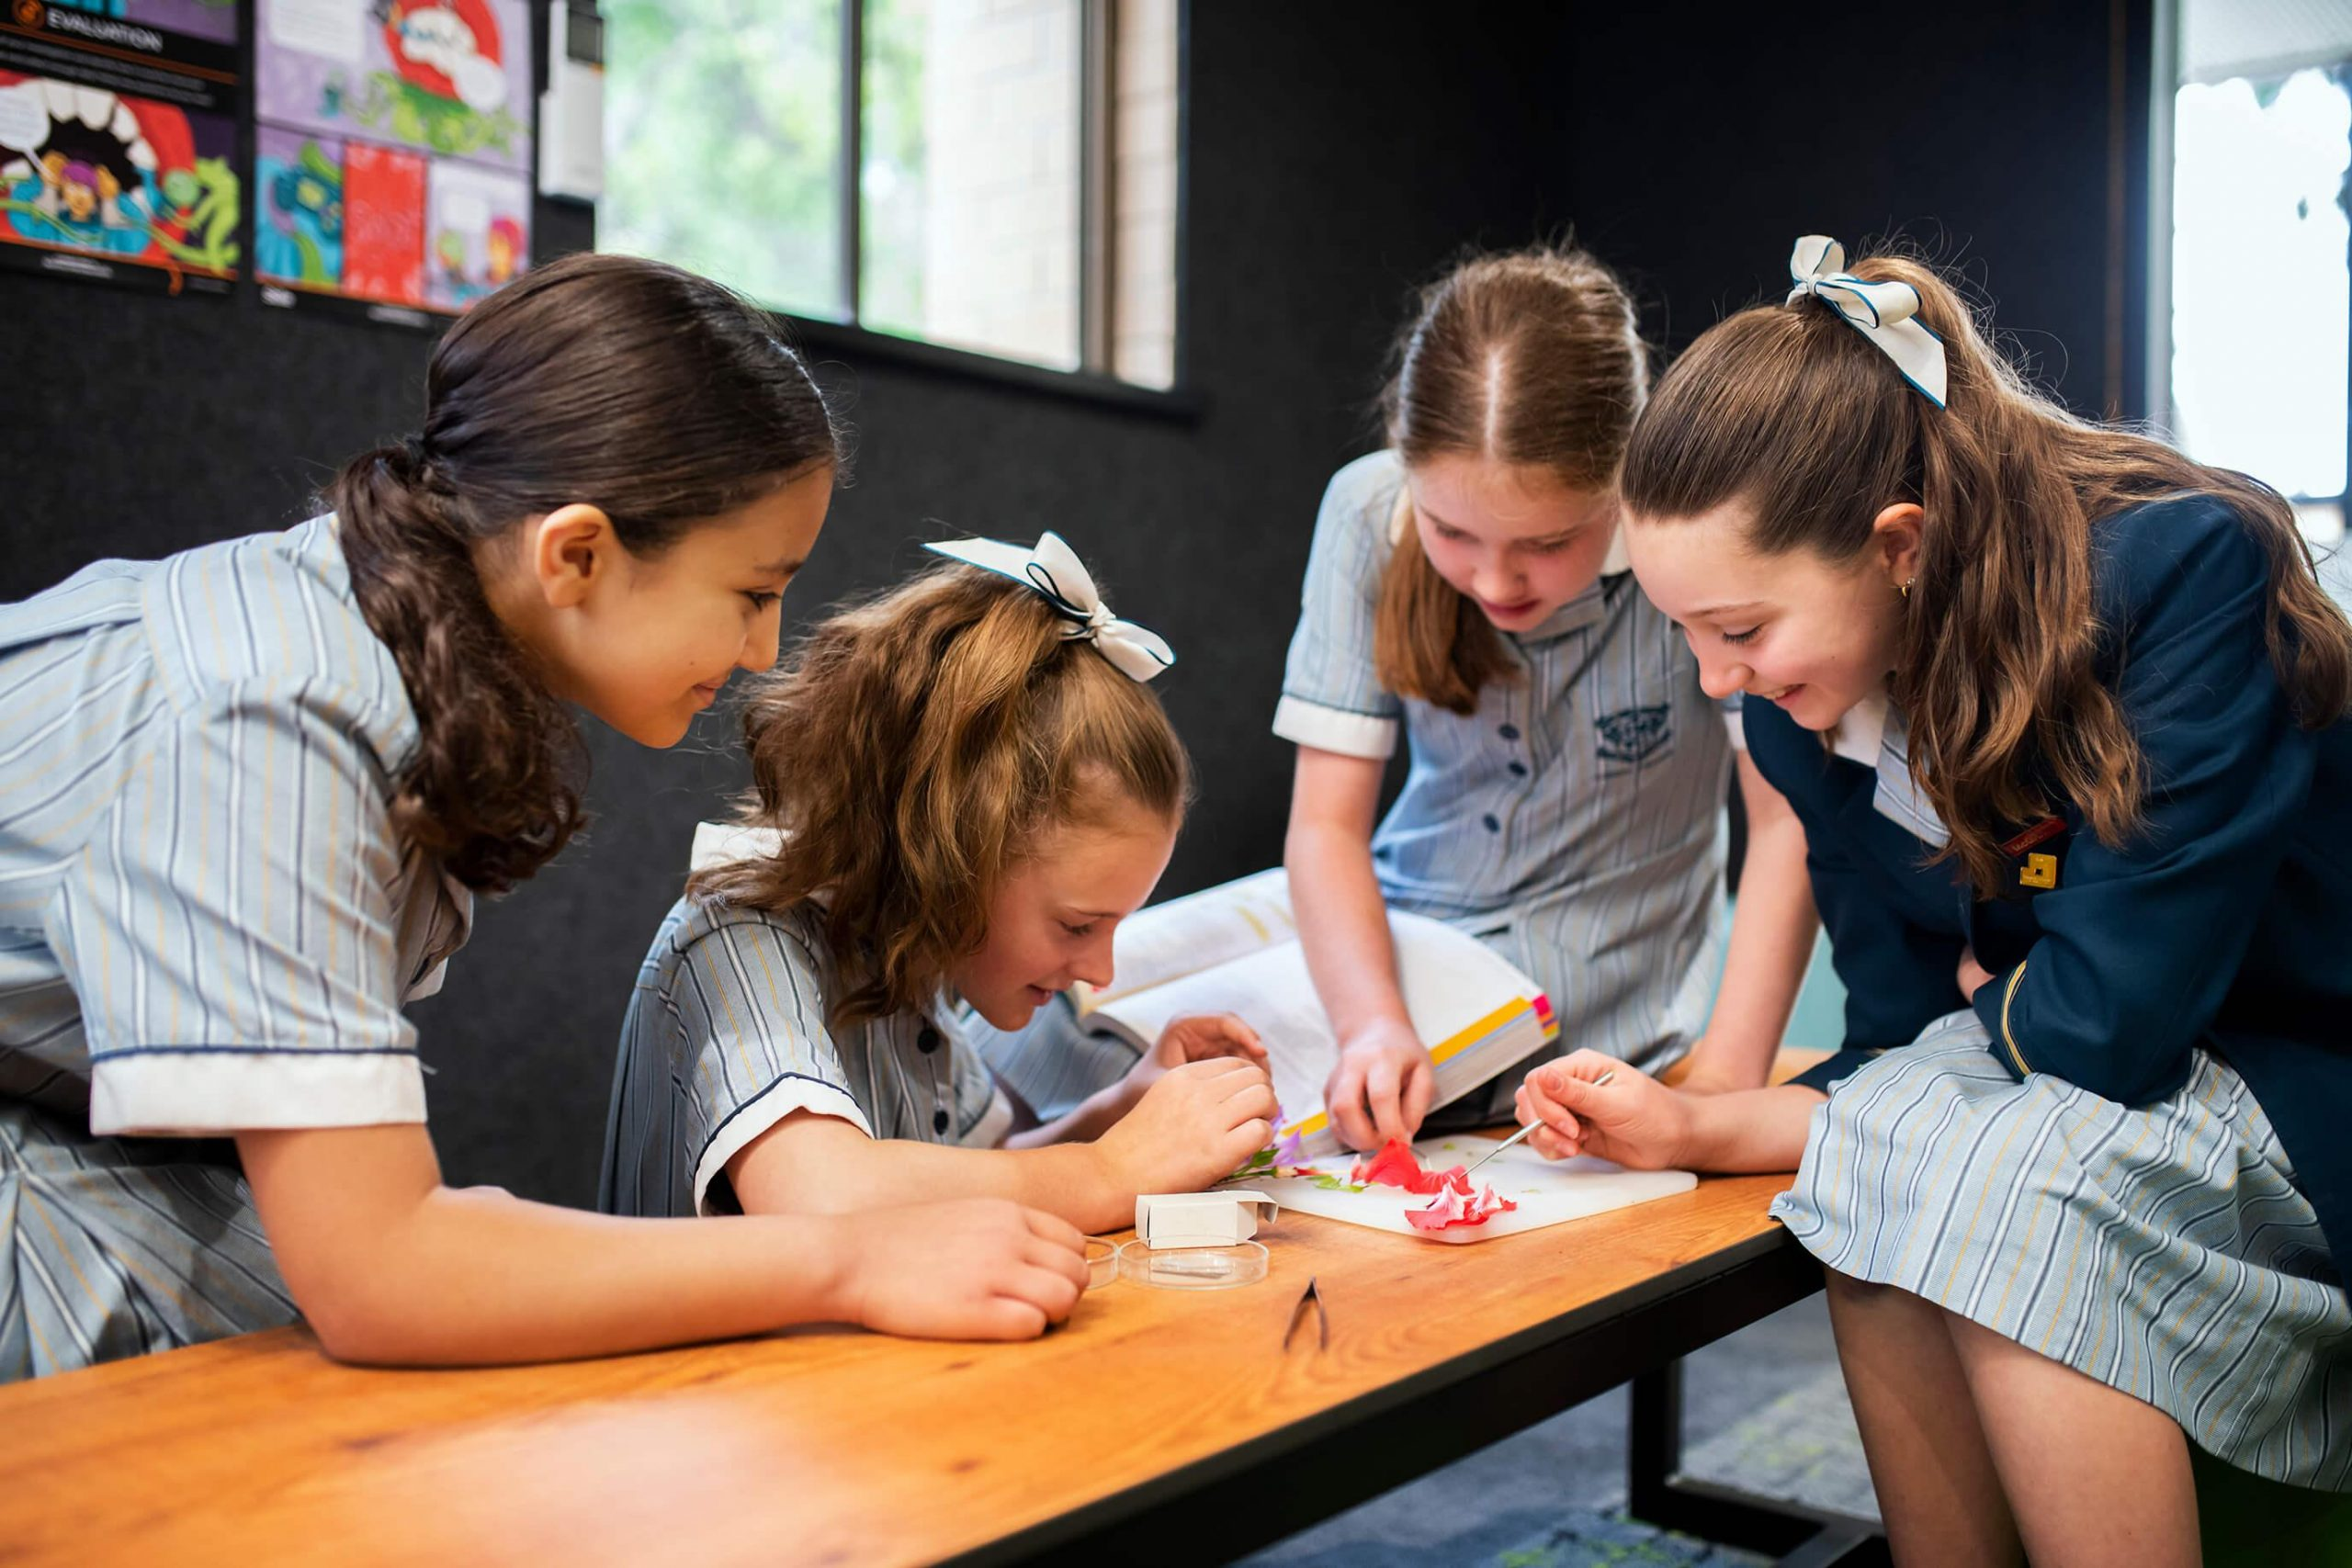 Loreto student actively learning in classroom environment